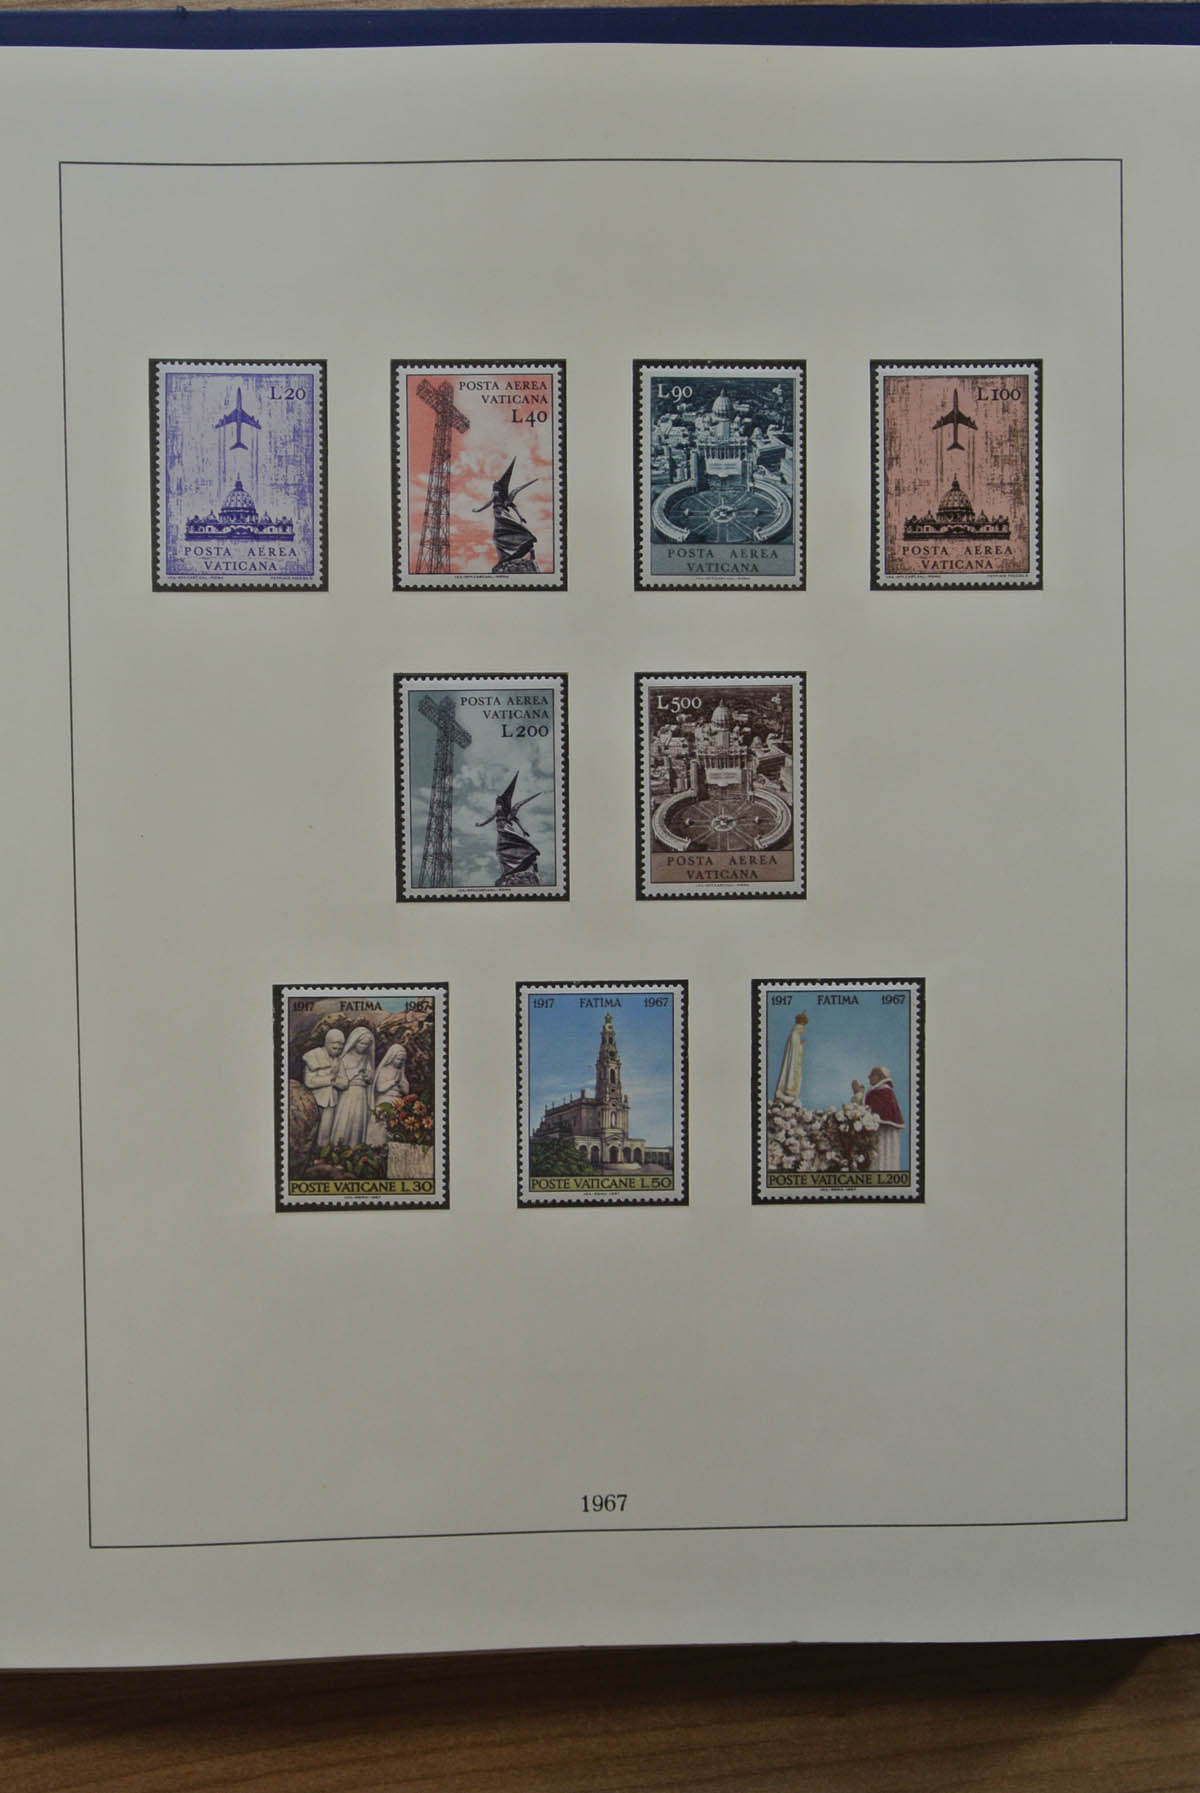 a48fc9d37bd Stamp Auction - vatikan - Sale #43 Asia, Collections Overseas ...